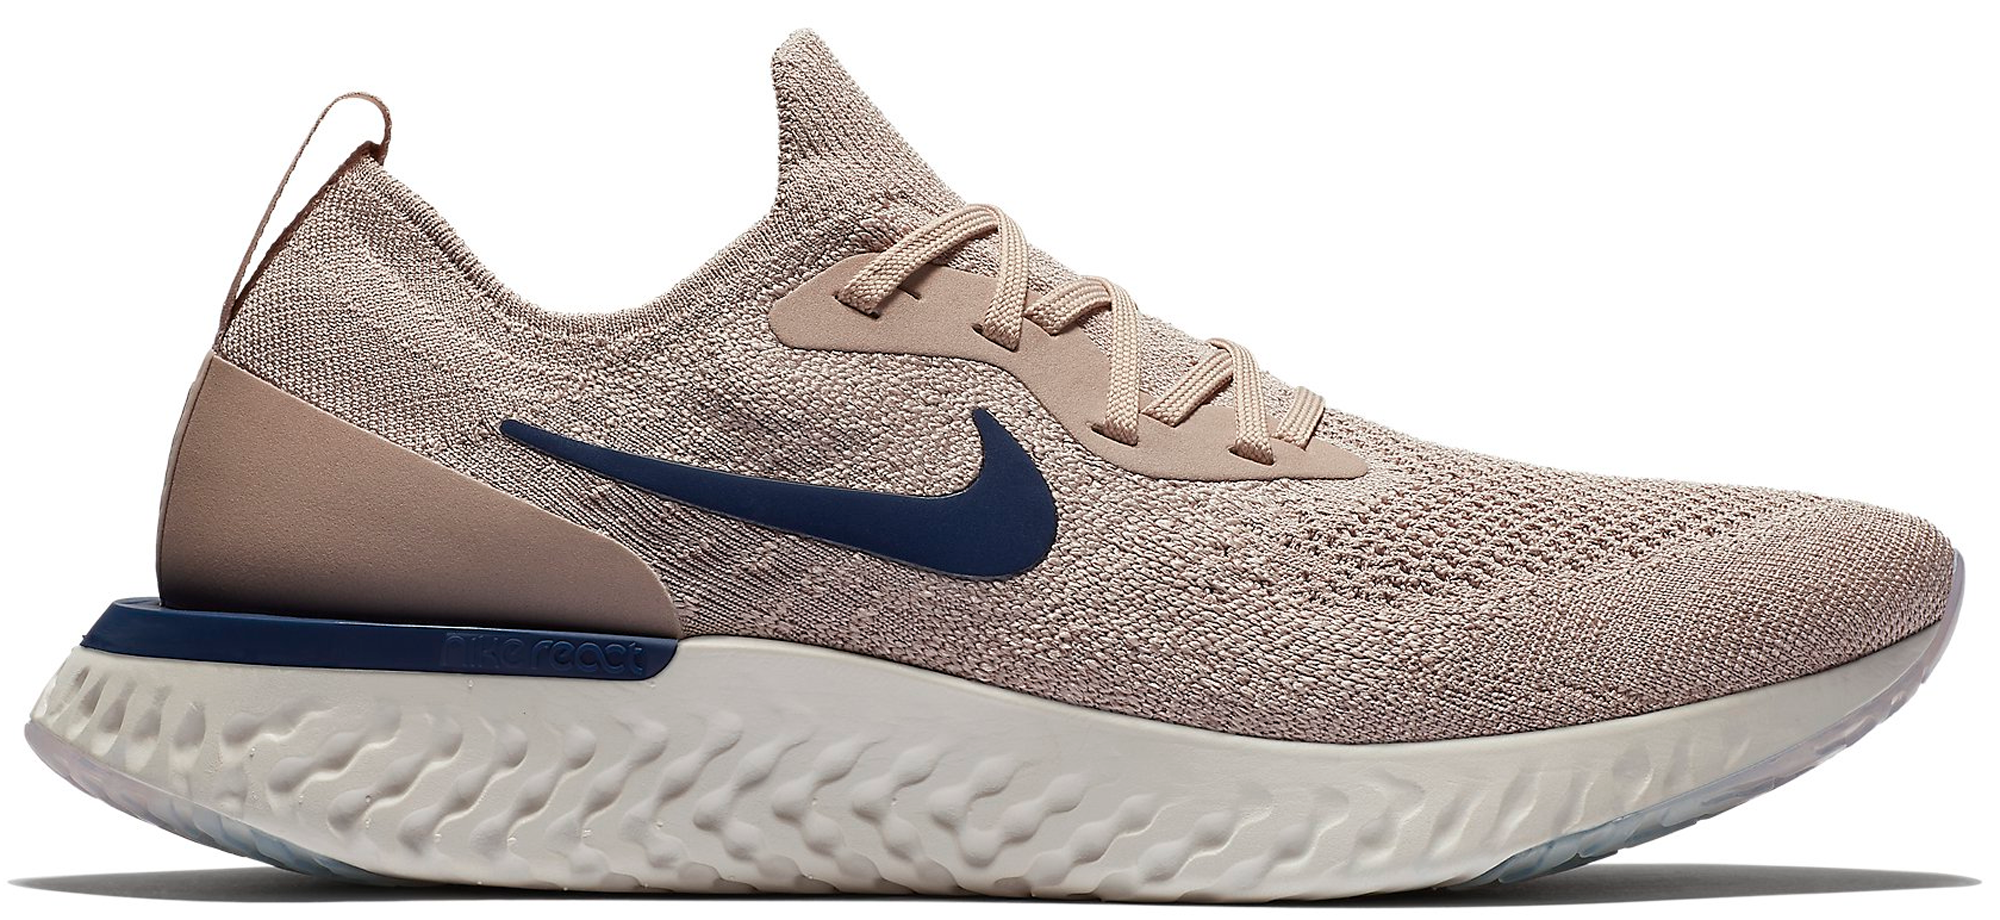 0af667a559a6 Nike Epic React Flyknit Diffused Taupe